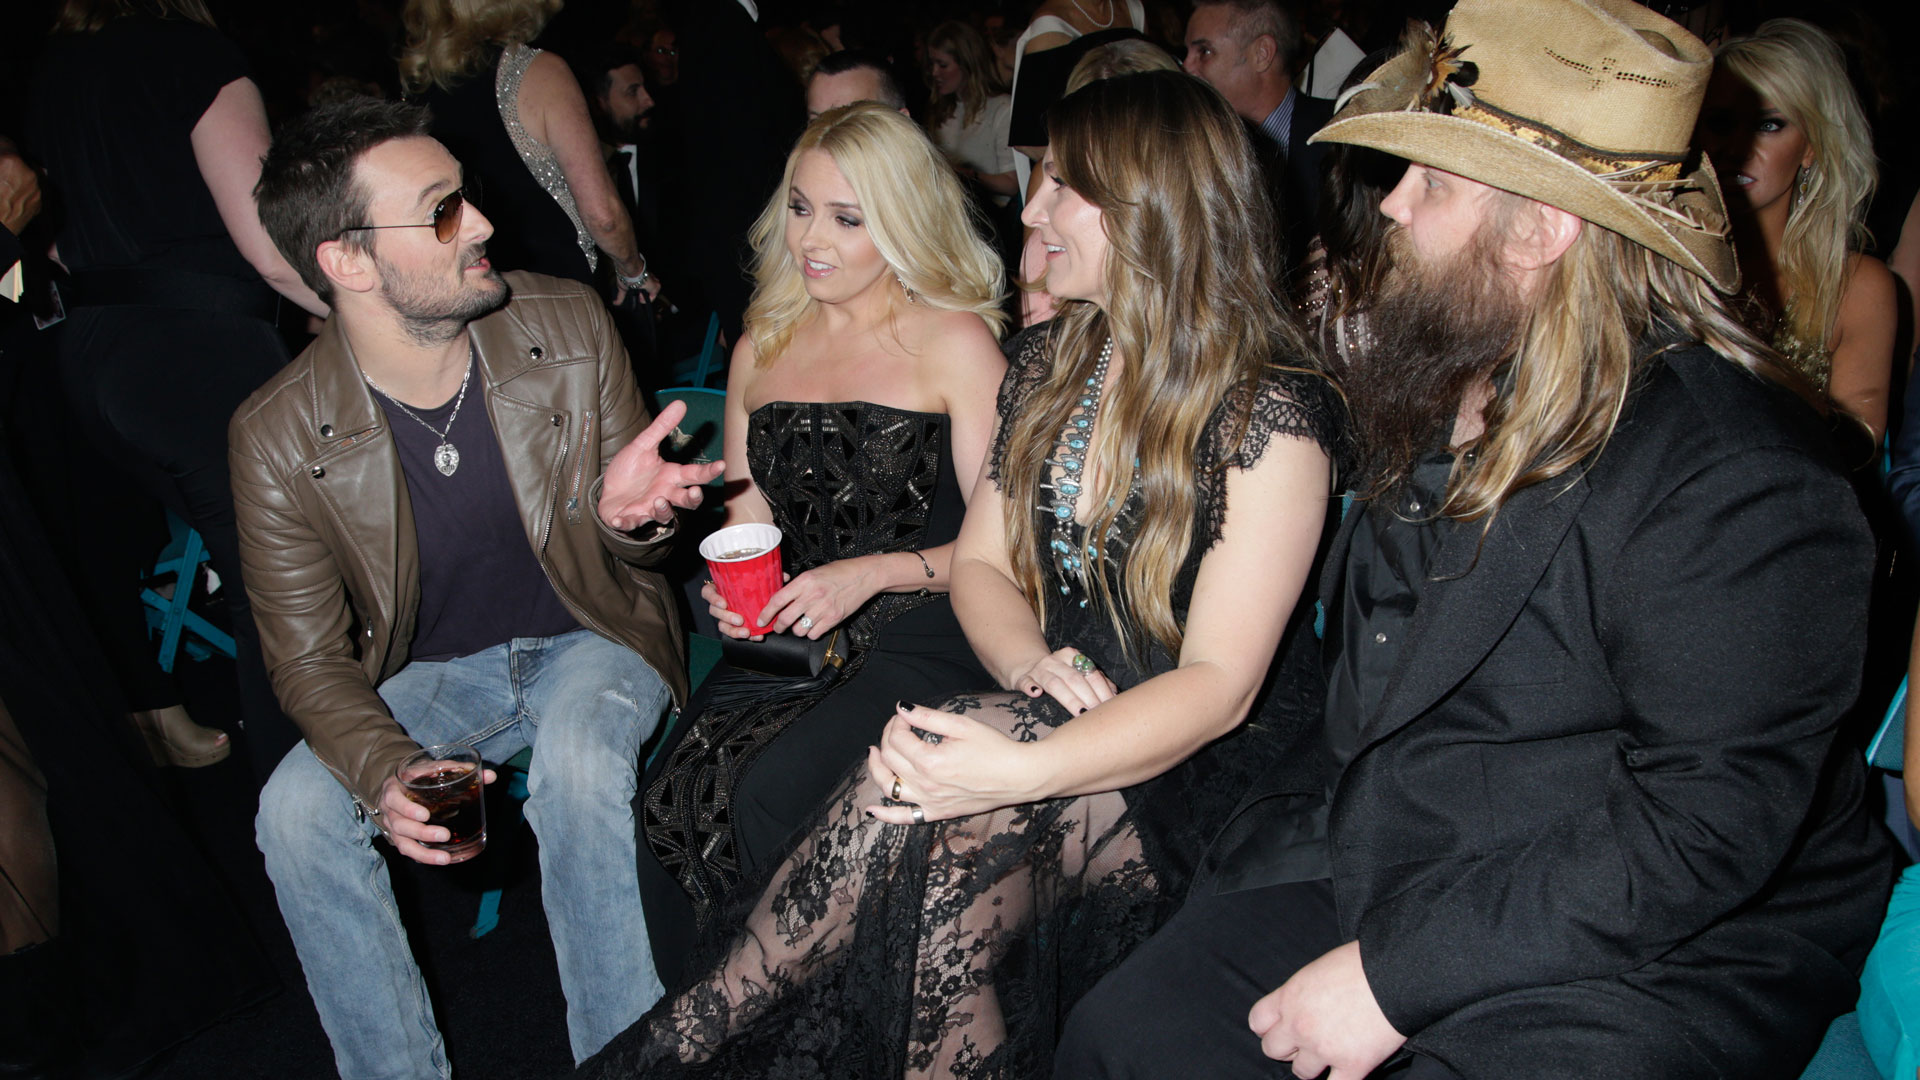 Eric Church and his wife chat with Chris and Morgane Stapleton during a commercial break.